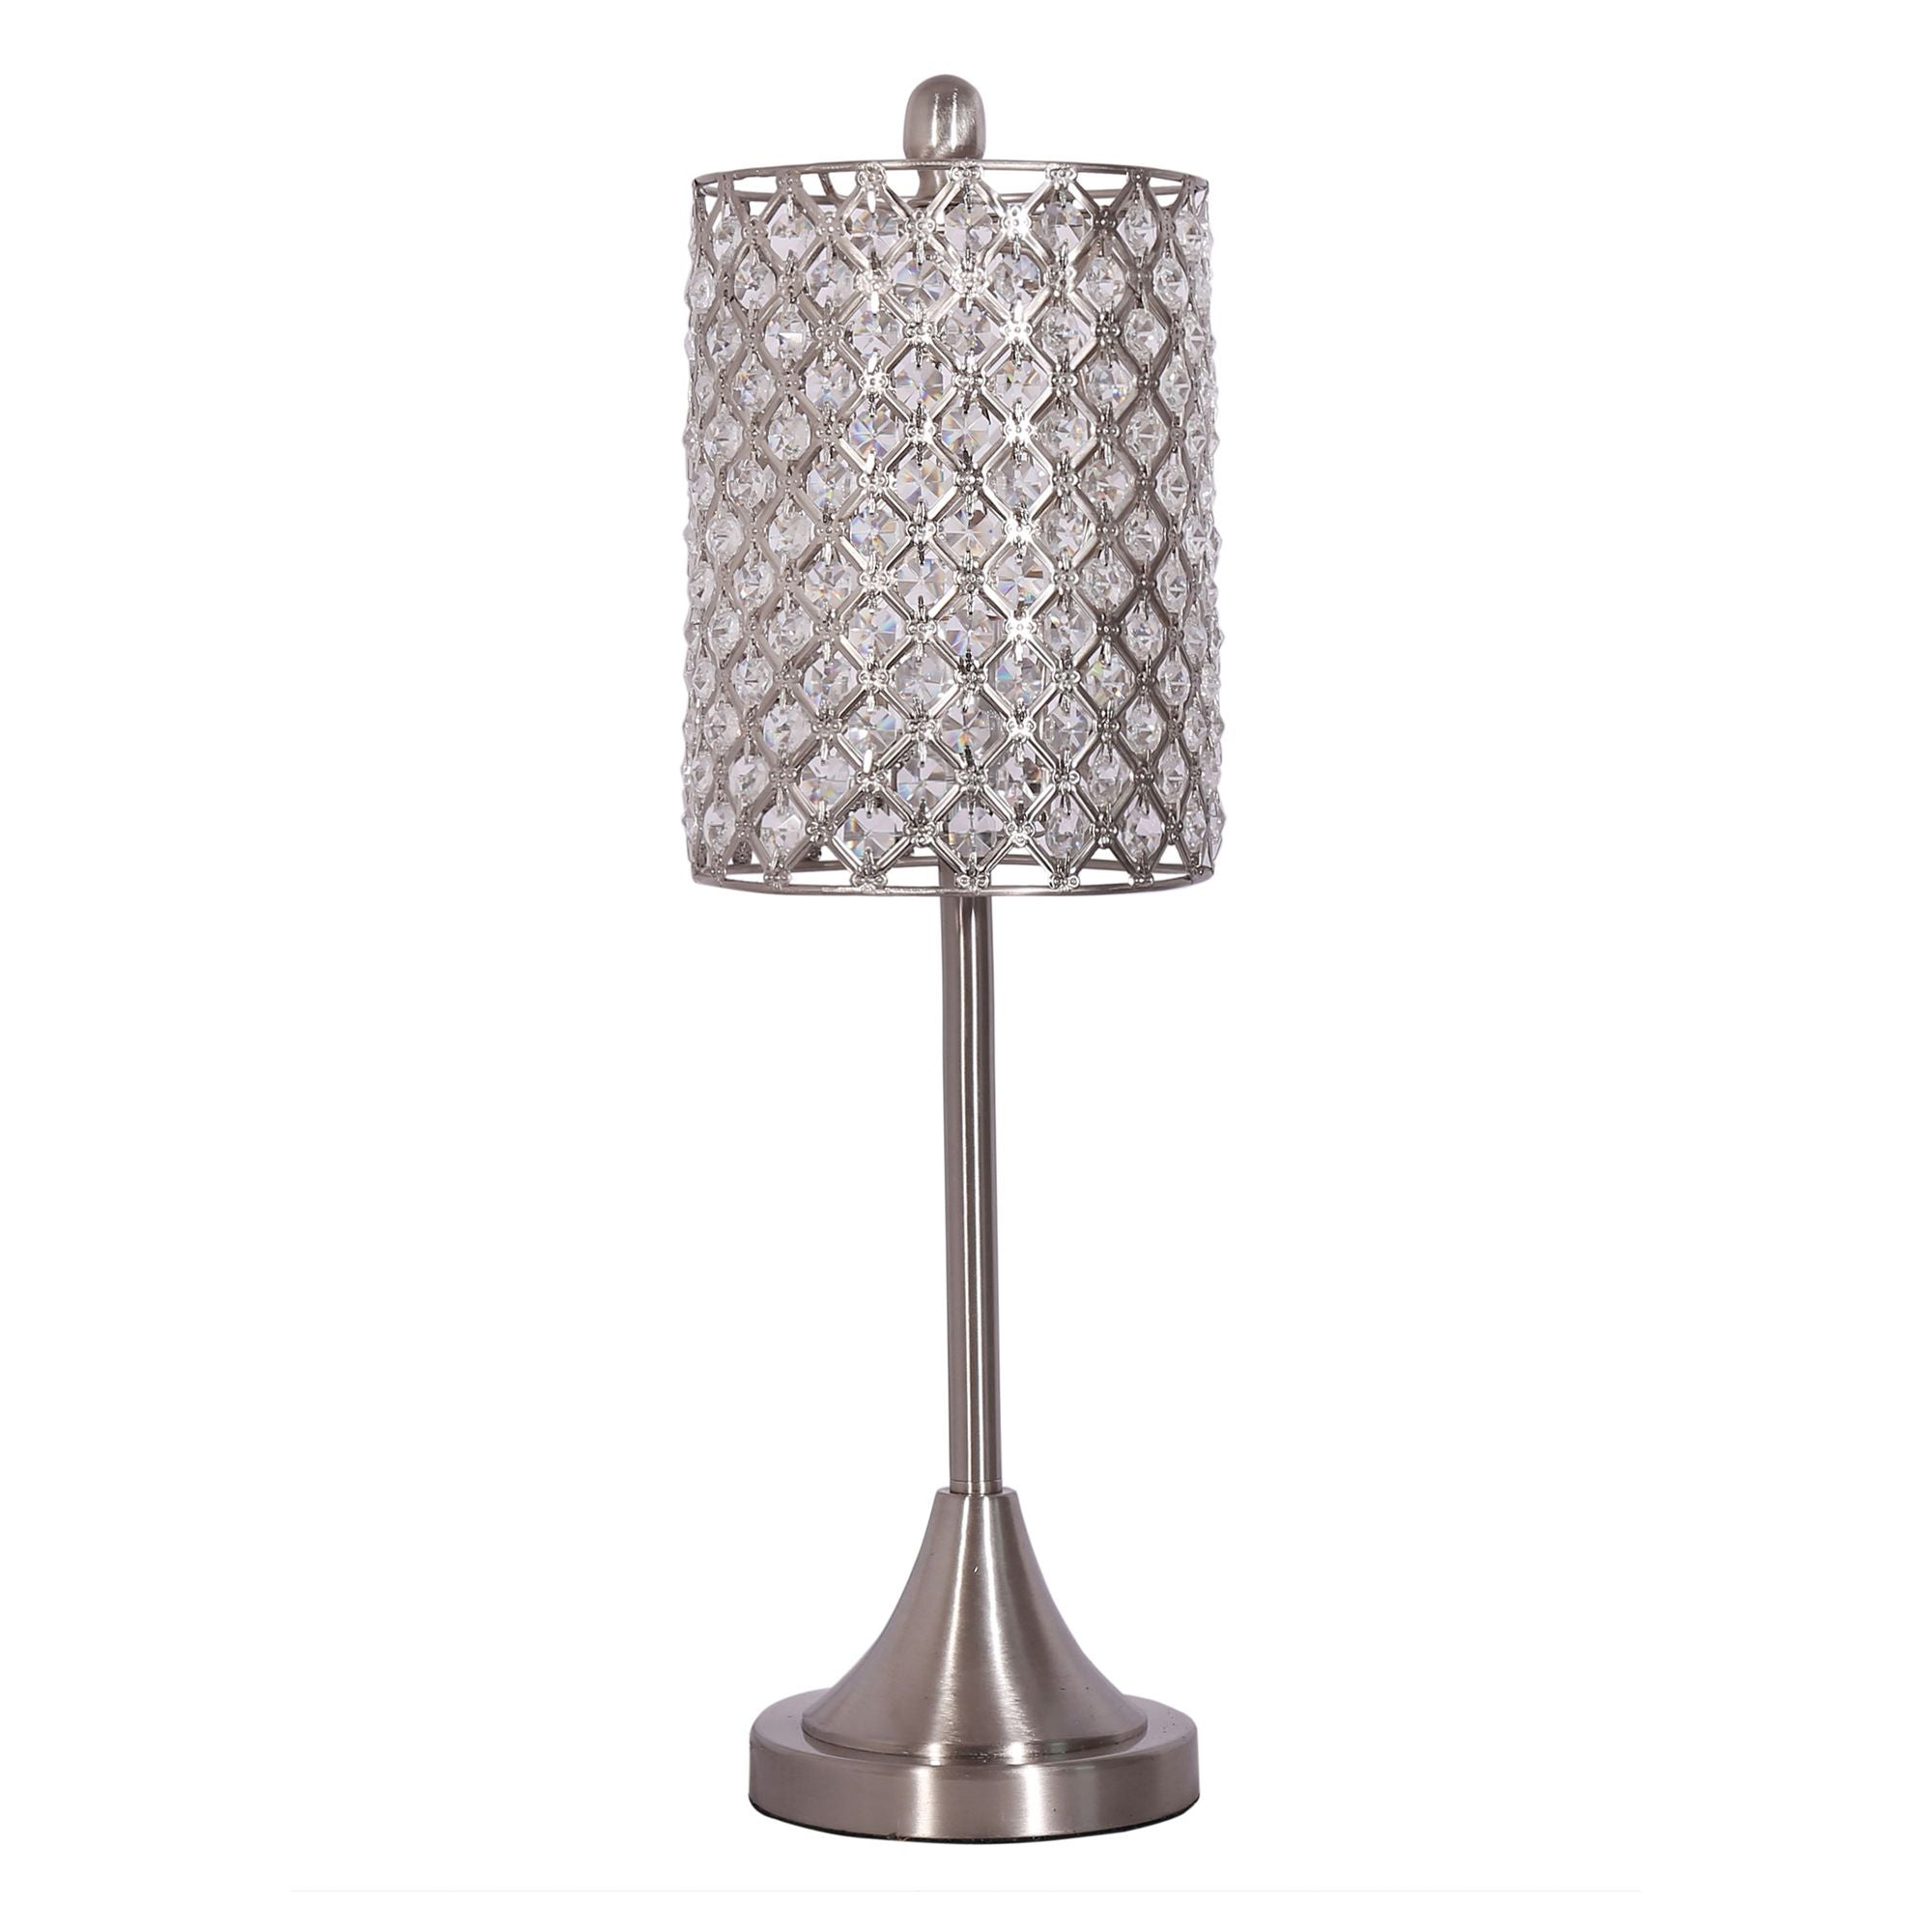 S/2 Metal Table Lamp w/ Crystal Bead Shade